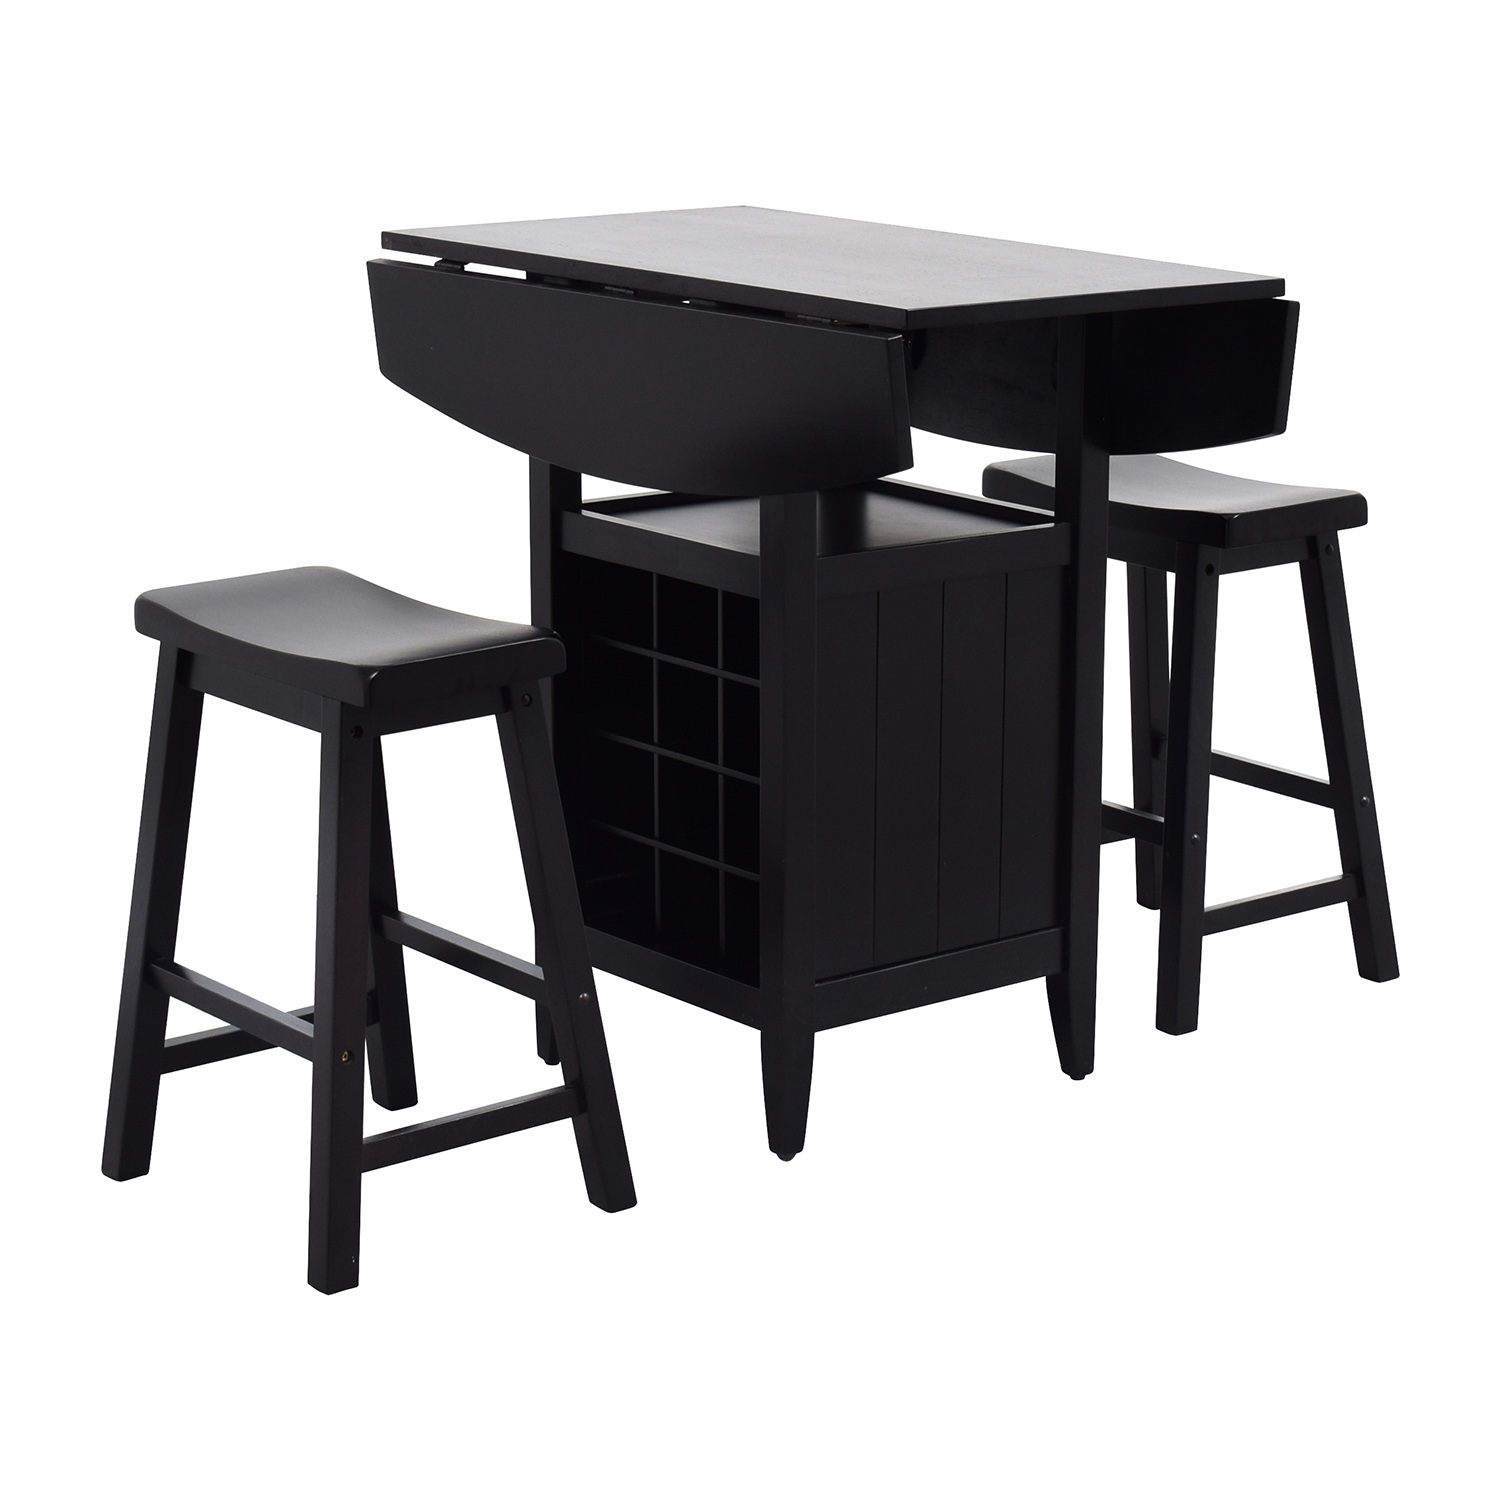 buy Dinette Wood Table with Storage with Two Stools online